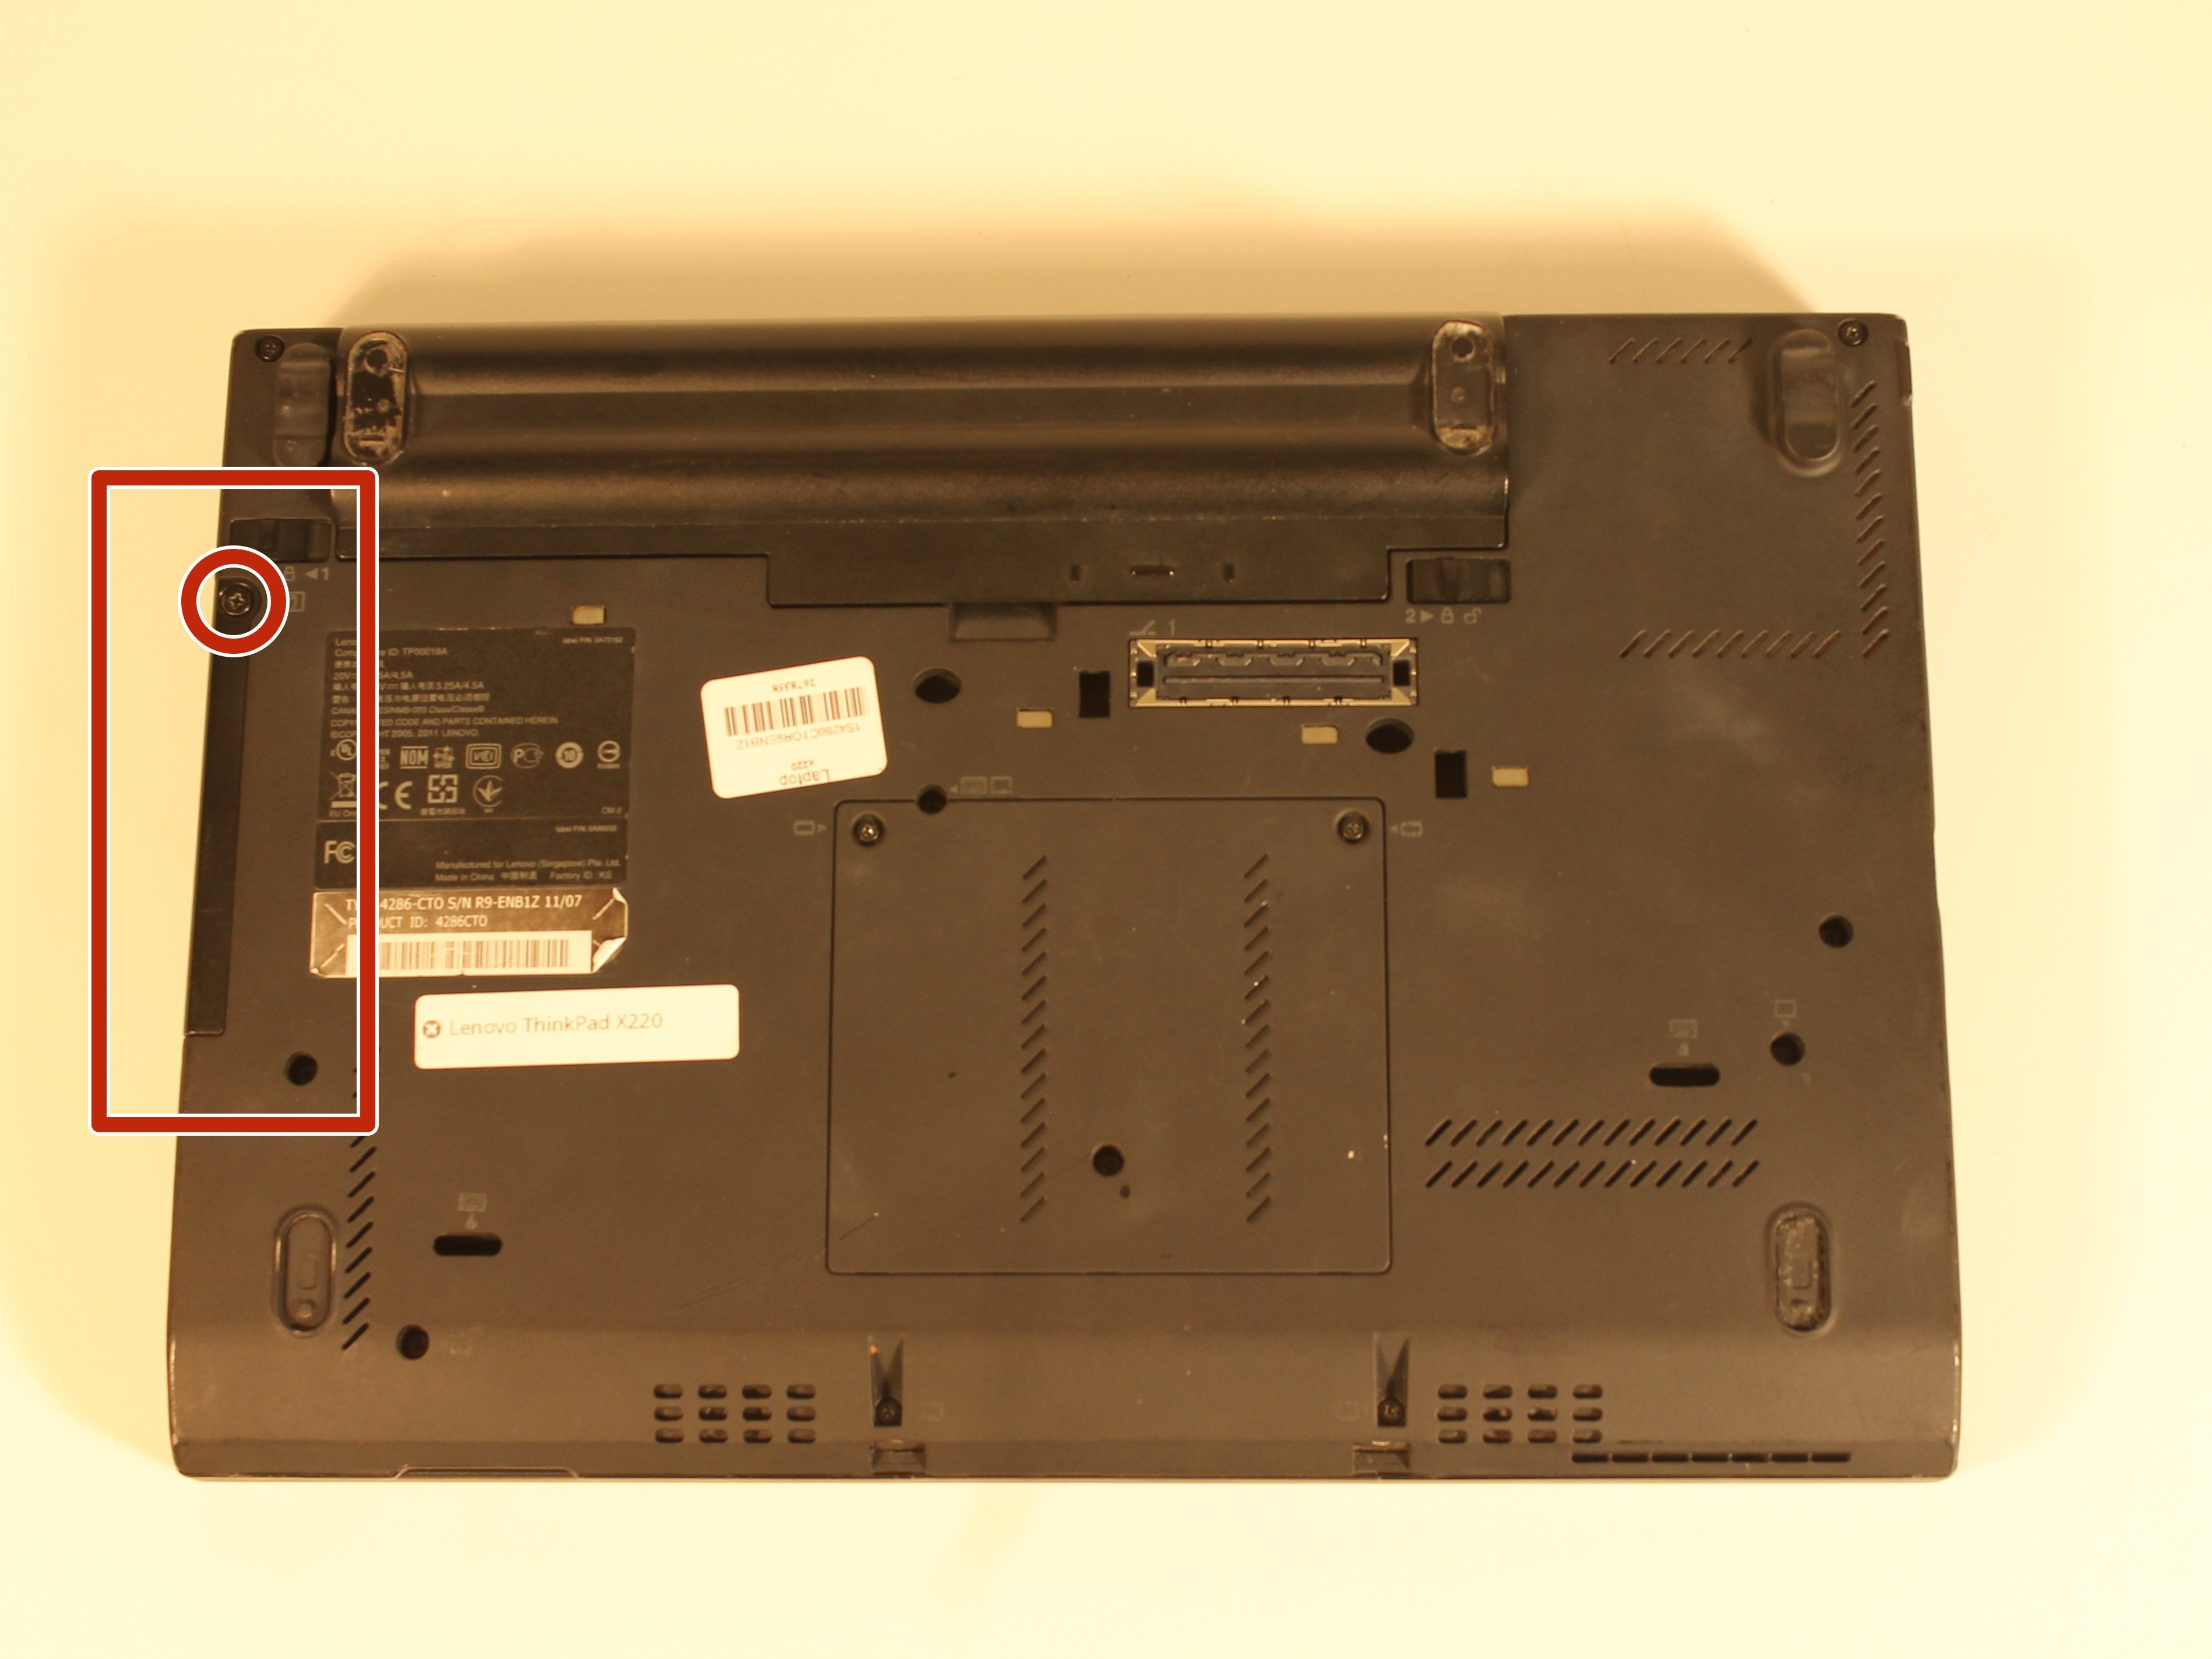 Lenovo Thinkpad X220 Hard Drive Replacement - iFixit Repair Guide